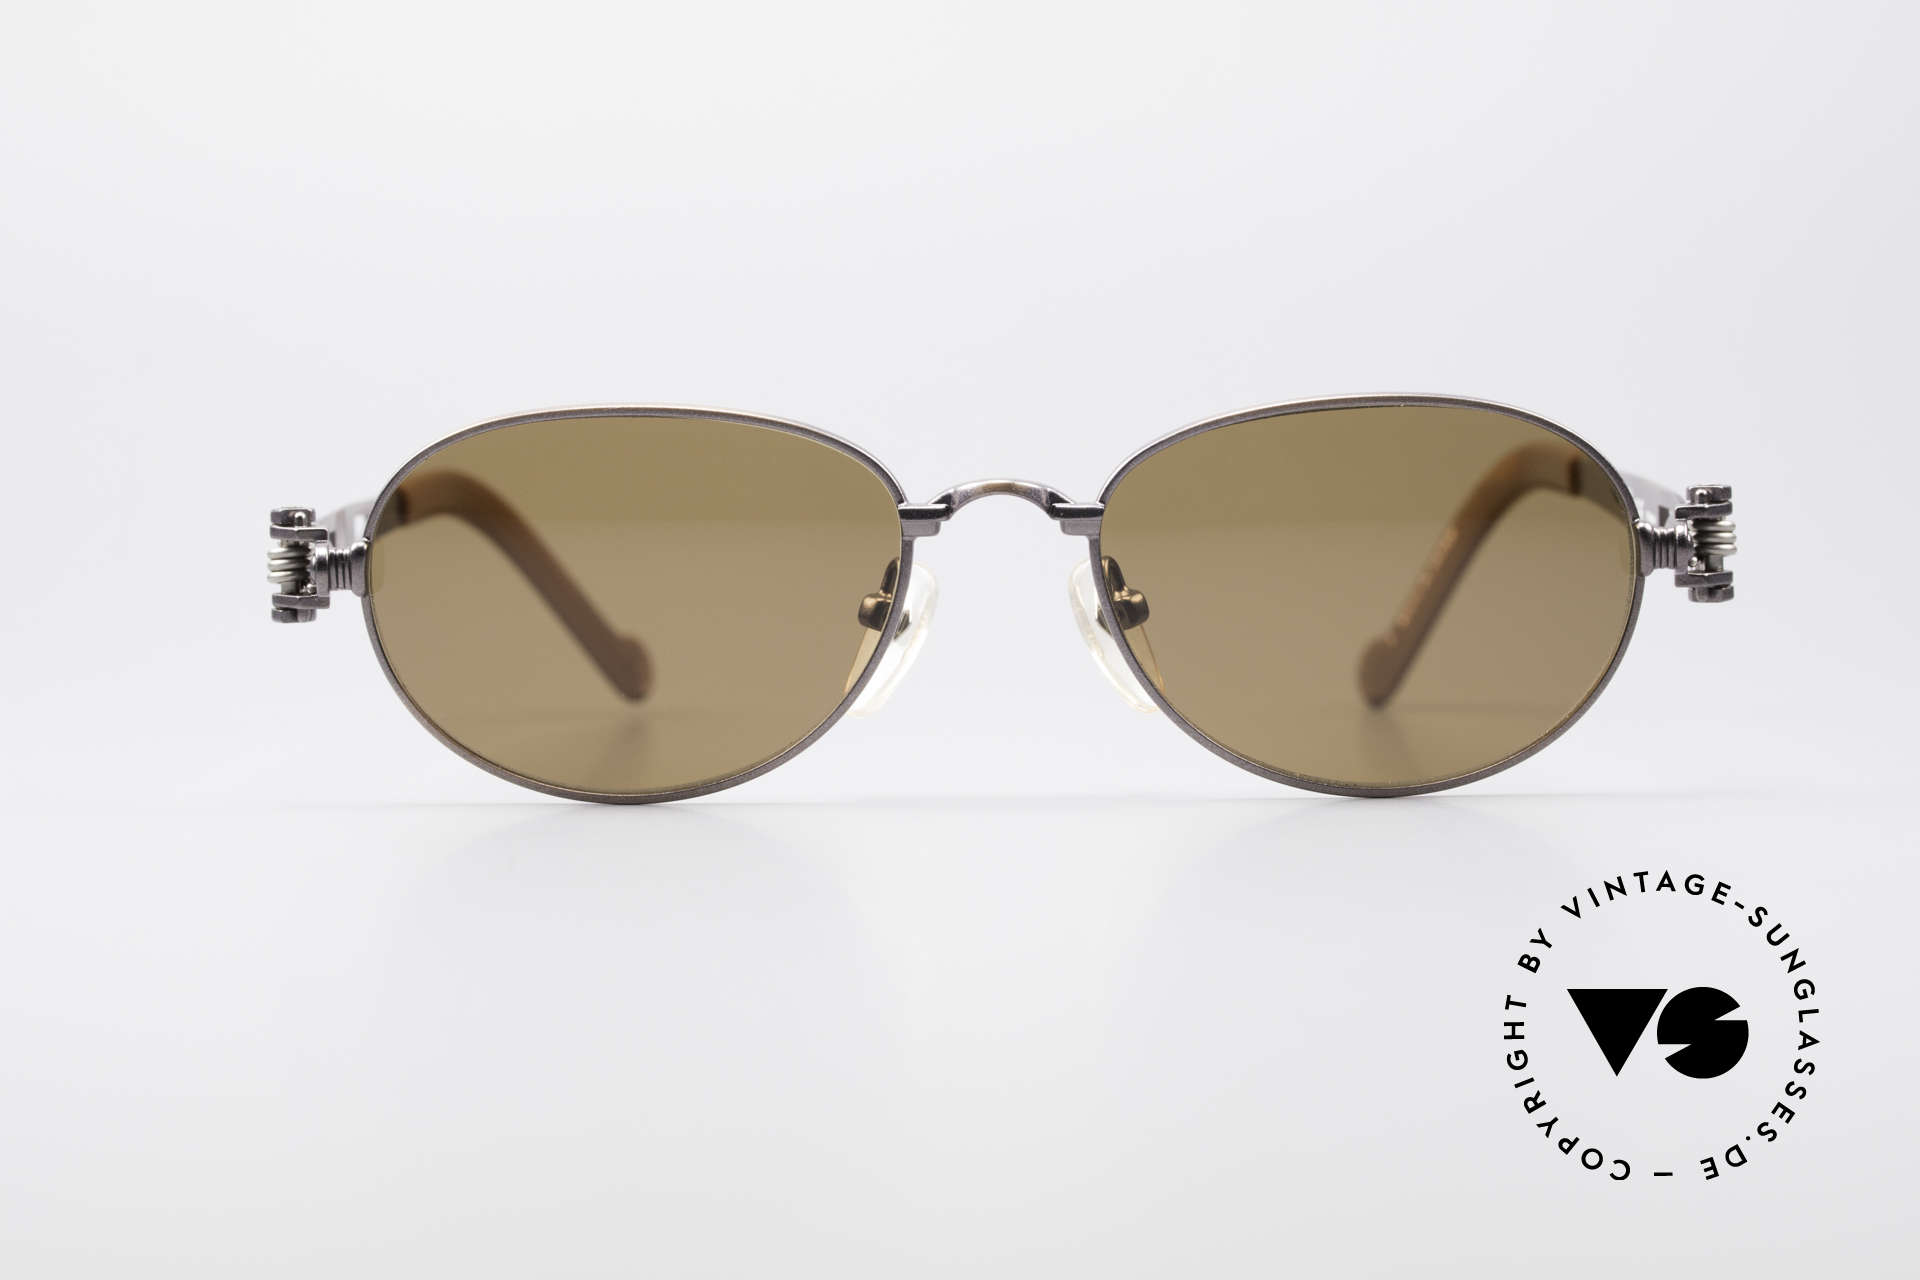 """Jean Paul Gaultier 56-8102 Oval Steampunk Sunglasses, """"industrial design"""" often called as """"STEAMPUNK"""", Made for Men and Women"""